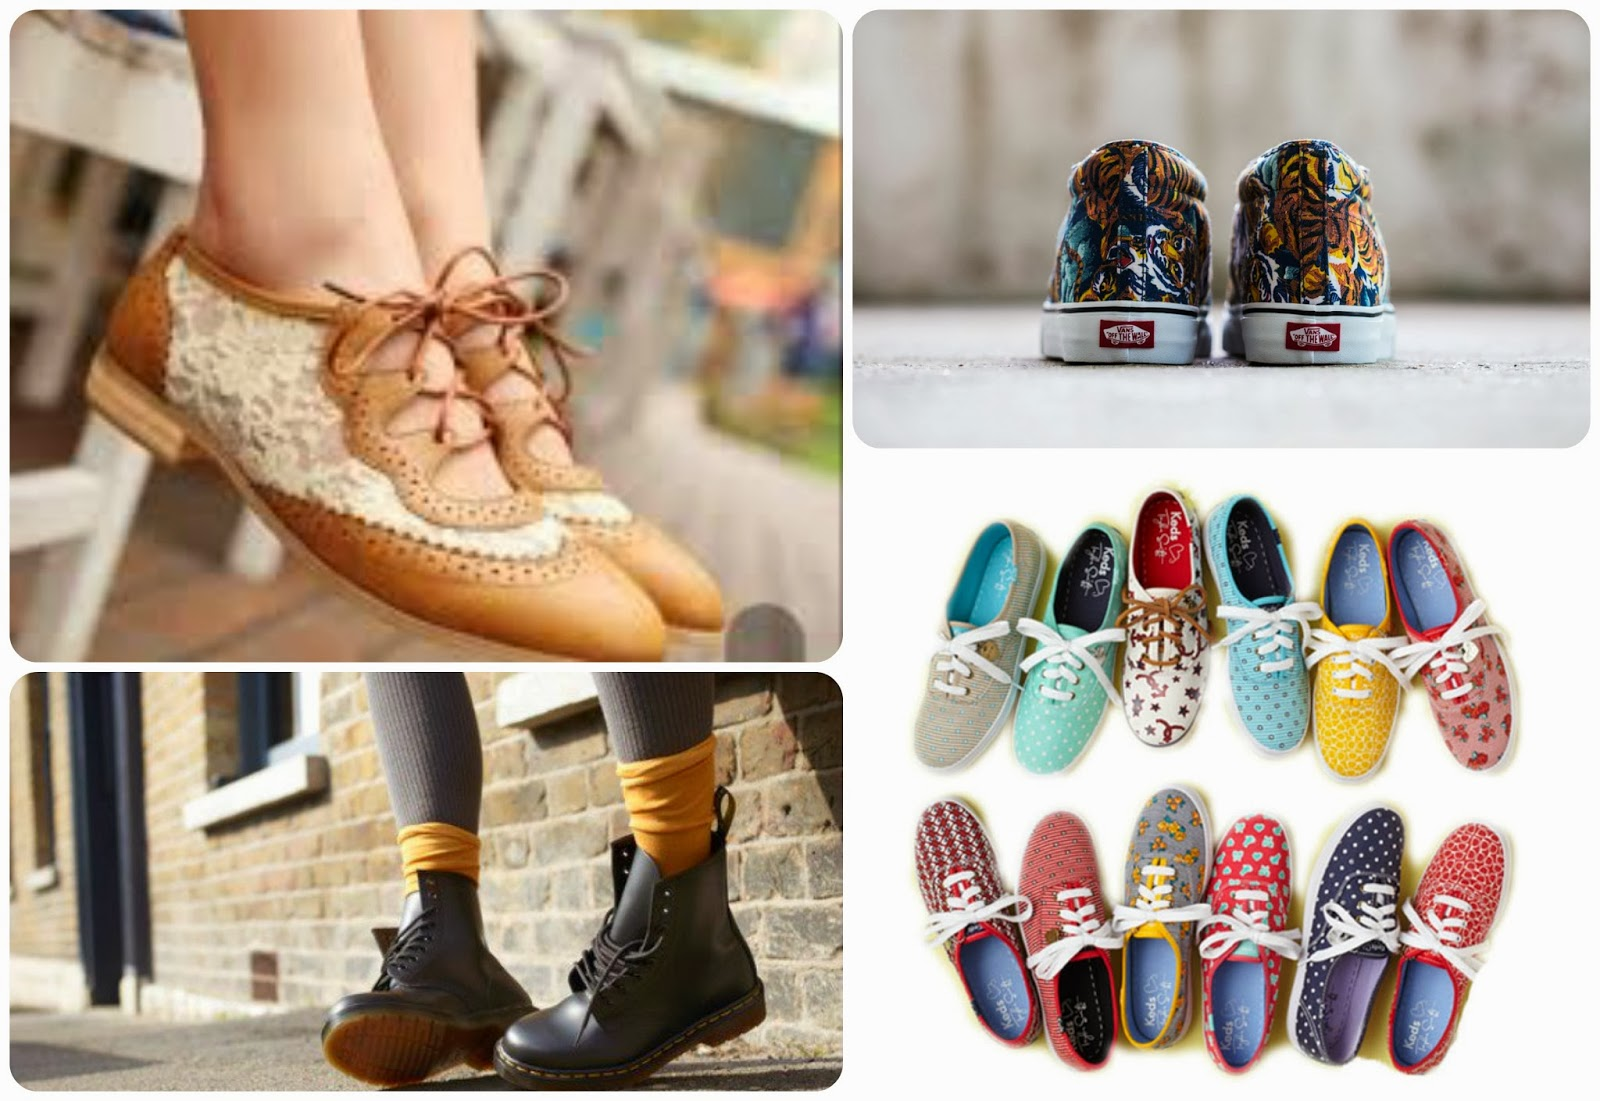 Shoes hipster girl - Zapatos de la chica hipster - Oxford, vans, converse, boots, keds